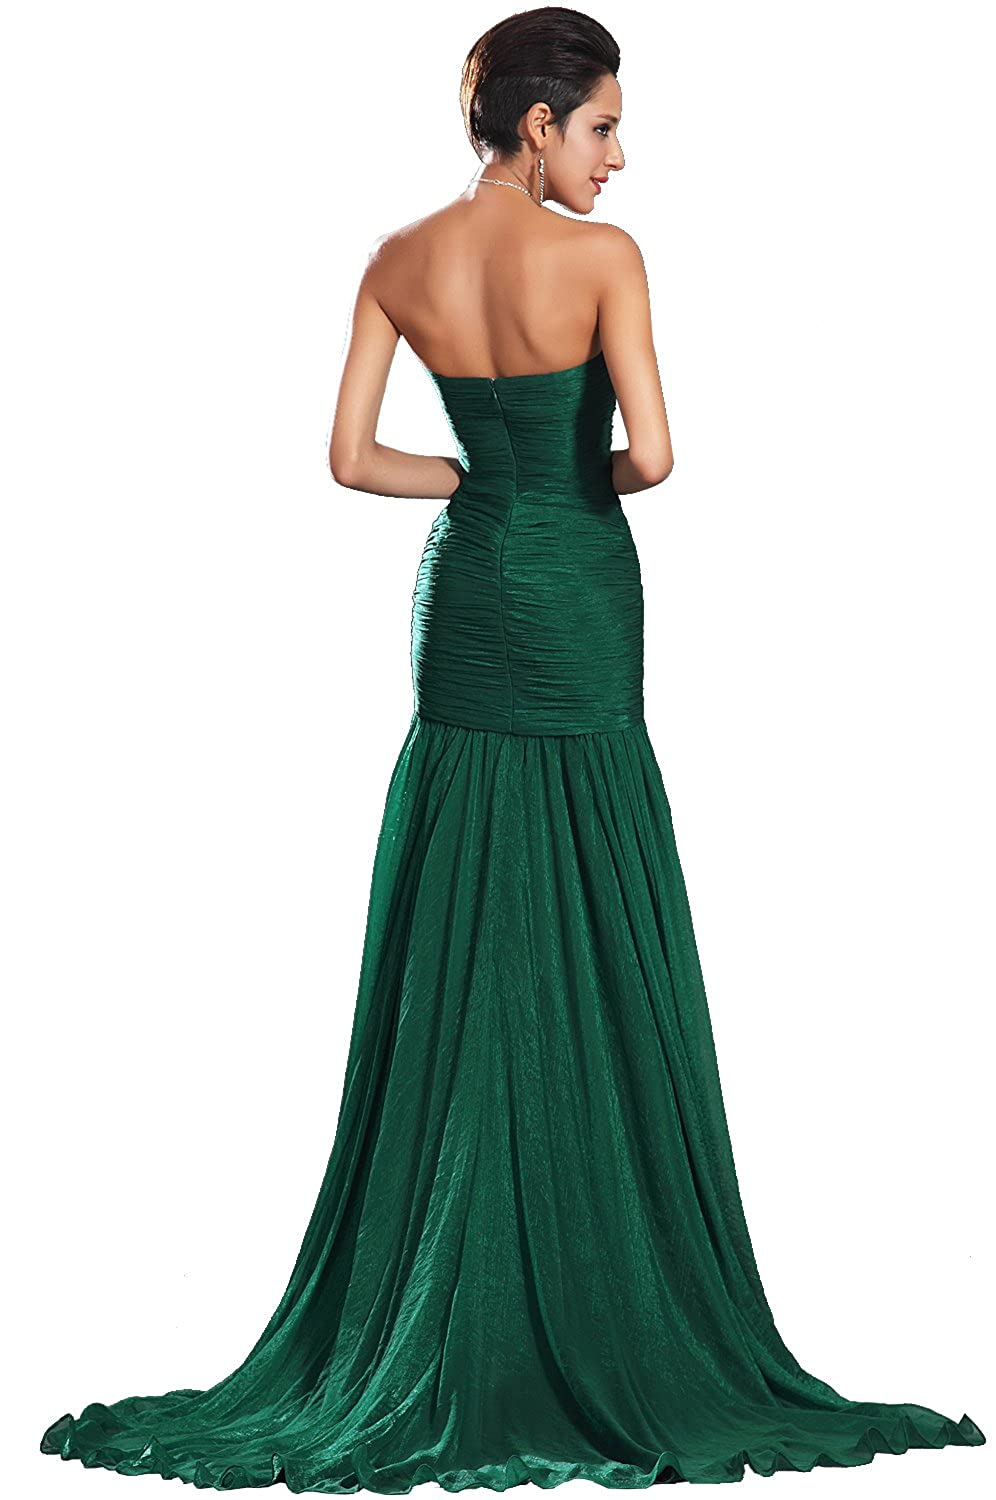 eDressit New Strapless Green Evening Dress Prom Ball Gown (00134604), SZ12: Amazon.co.uk: Clothing